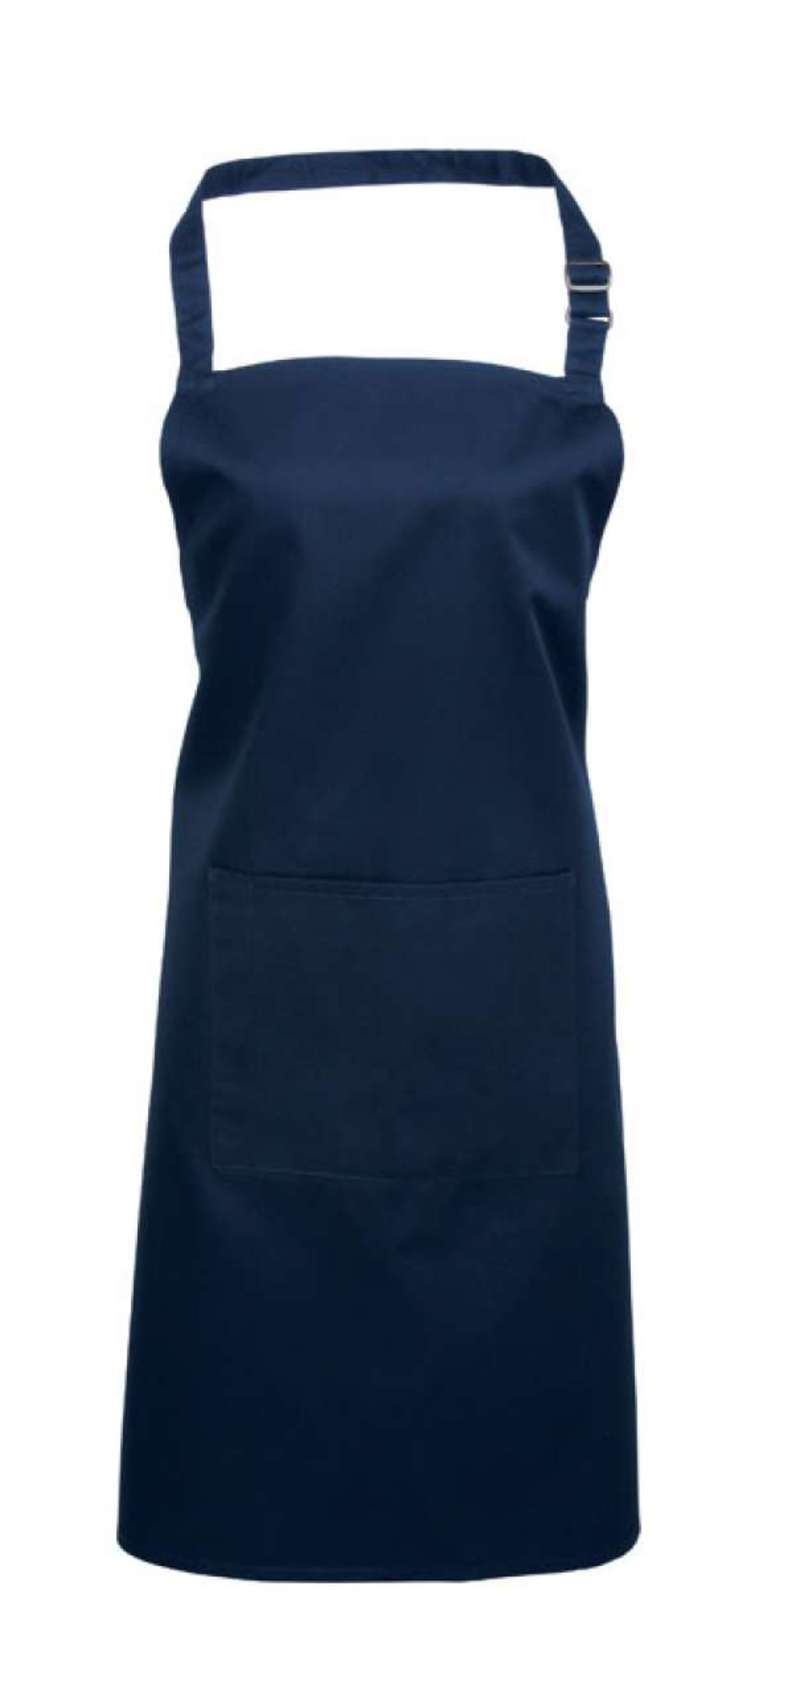 'DELUXE' BIB APRON WITH POCKET